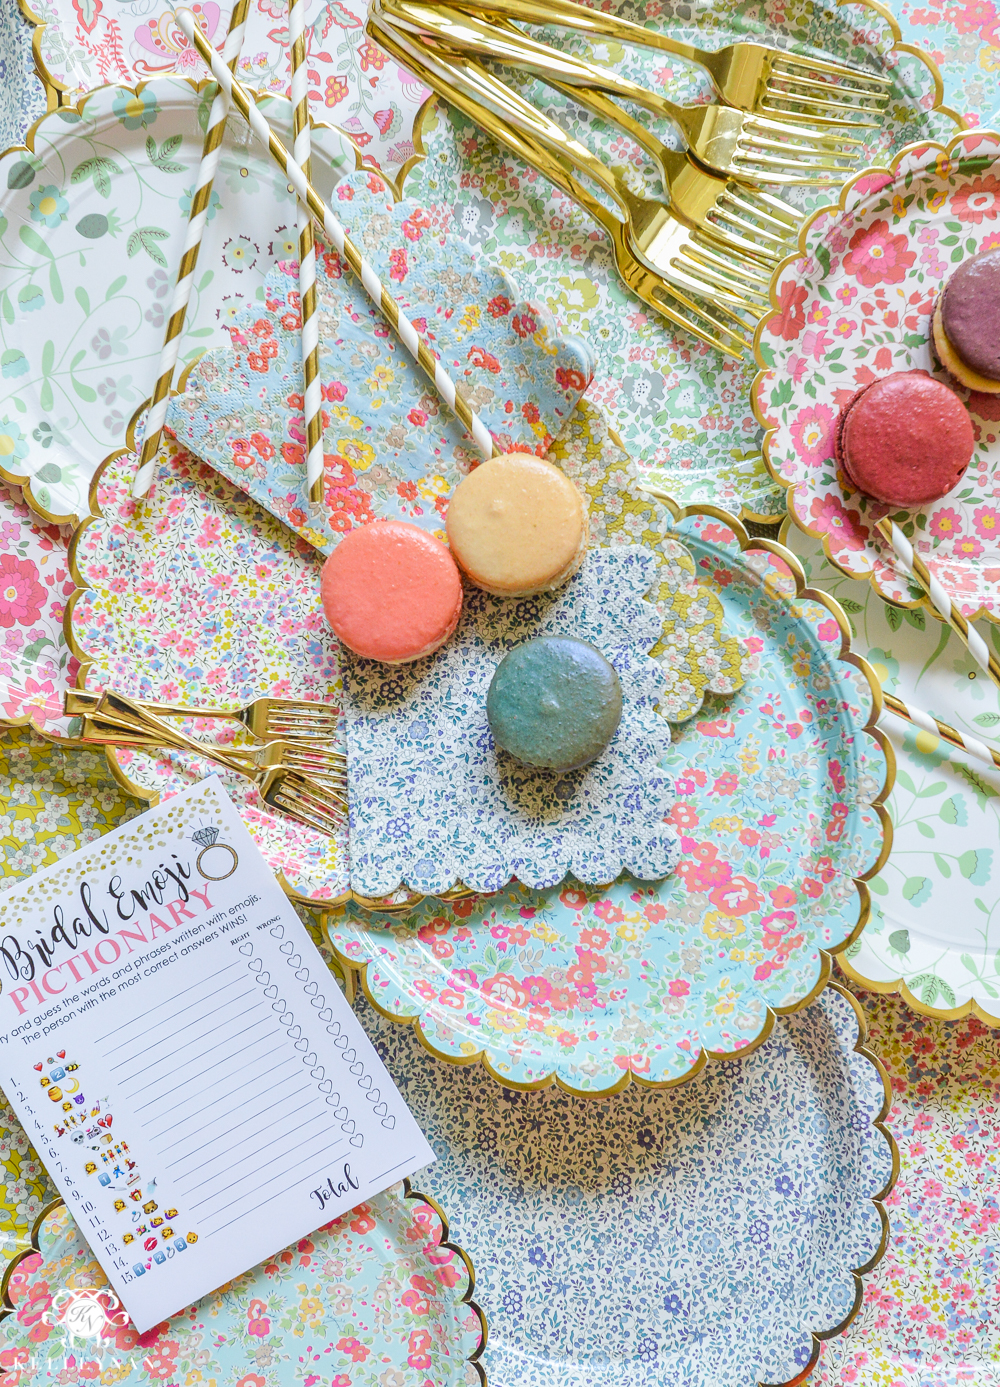 968db0a14 Bridal Shower Floral Plates Macarons and Gold Flatware- bridal shower ideas  for a garden party